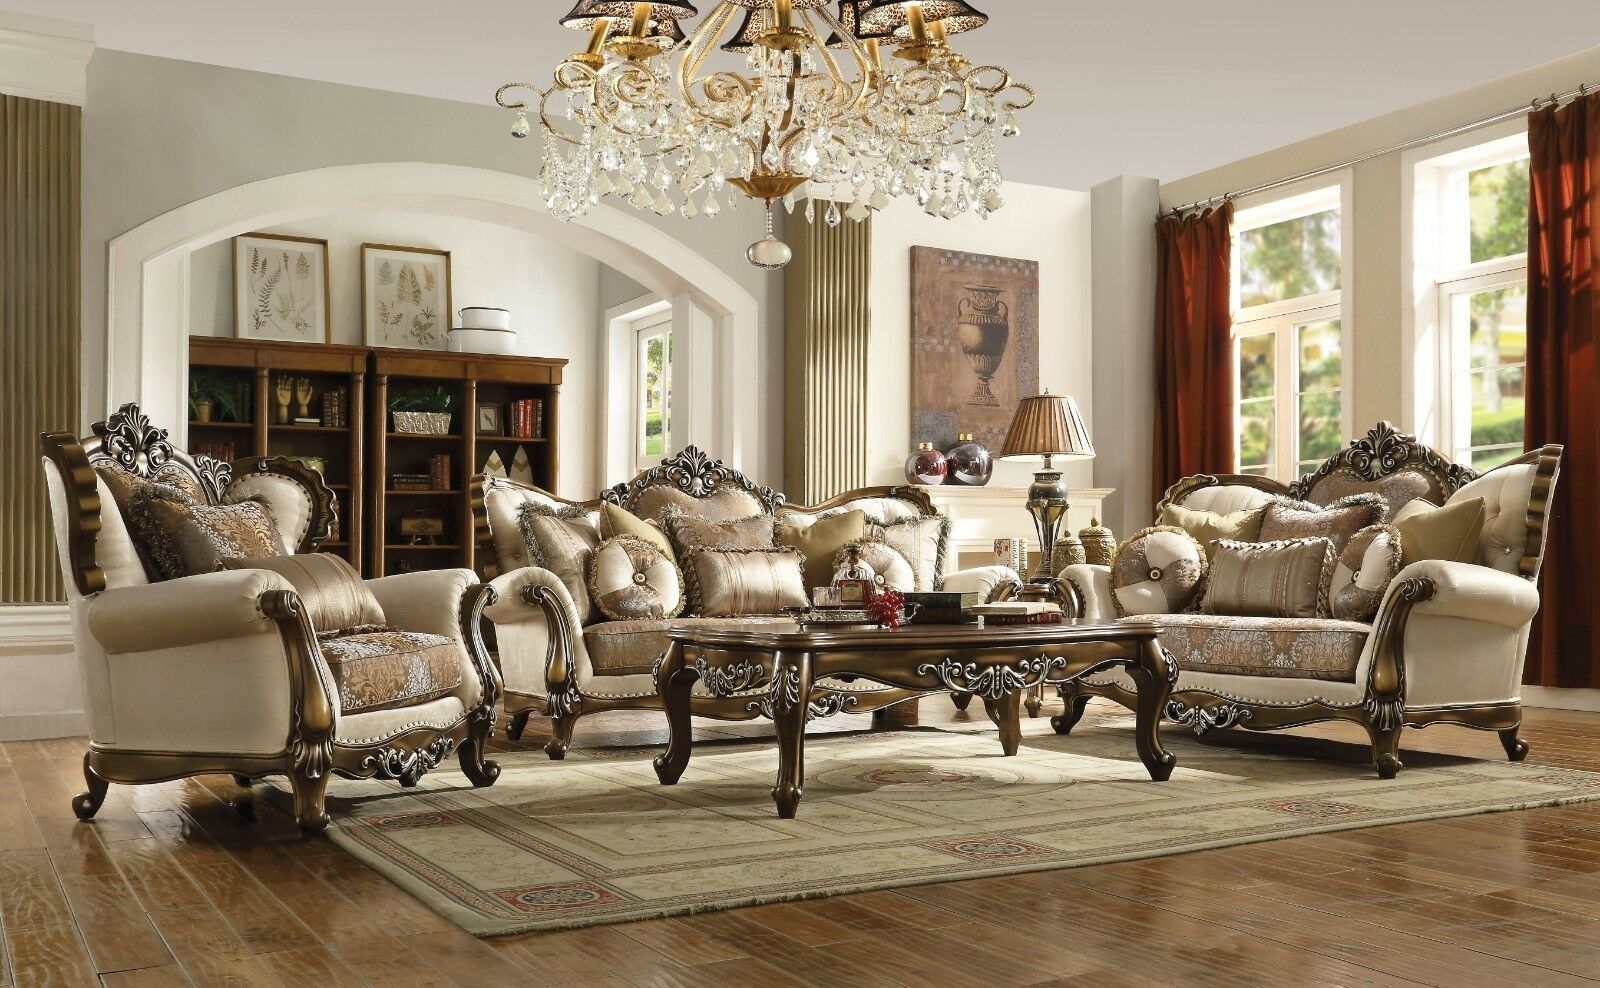 Opulent Traditional Luxury Living Room 3pc Sofa Set Carved Wood Trim Pillows For Sale Online Ebay